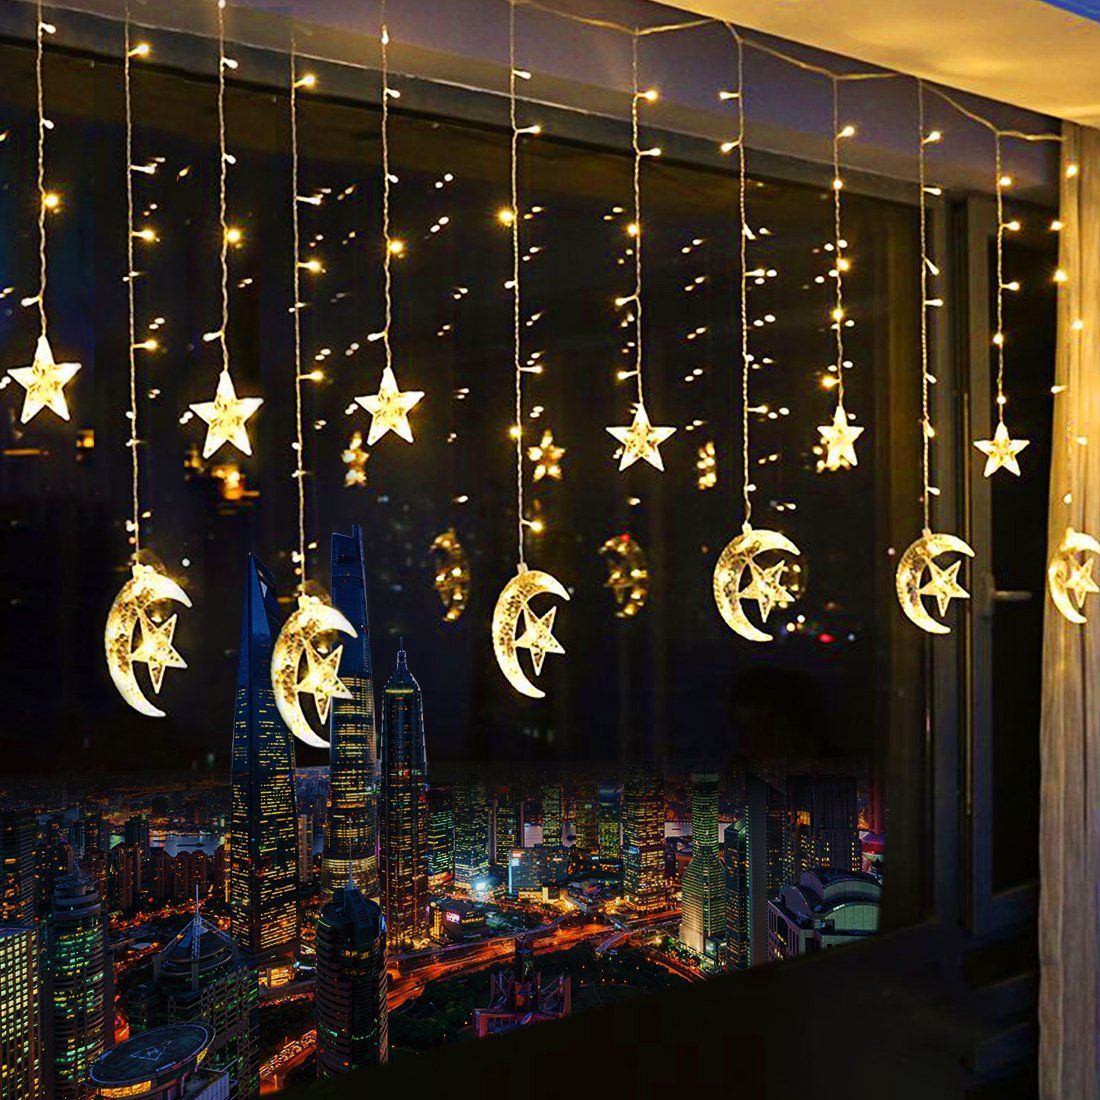 2.5M 110V/220V LED Moon Star Curtain Light Lamp Christmas Icicle String Lights For Ramadan Wedding Party Decoration Garland